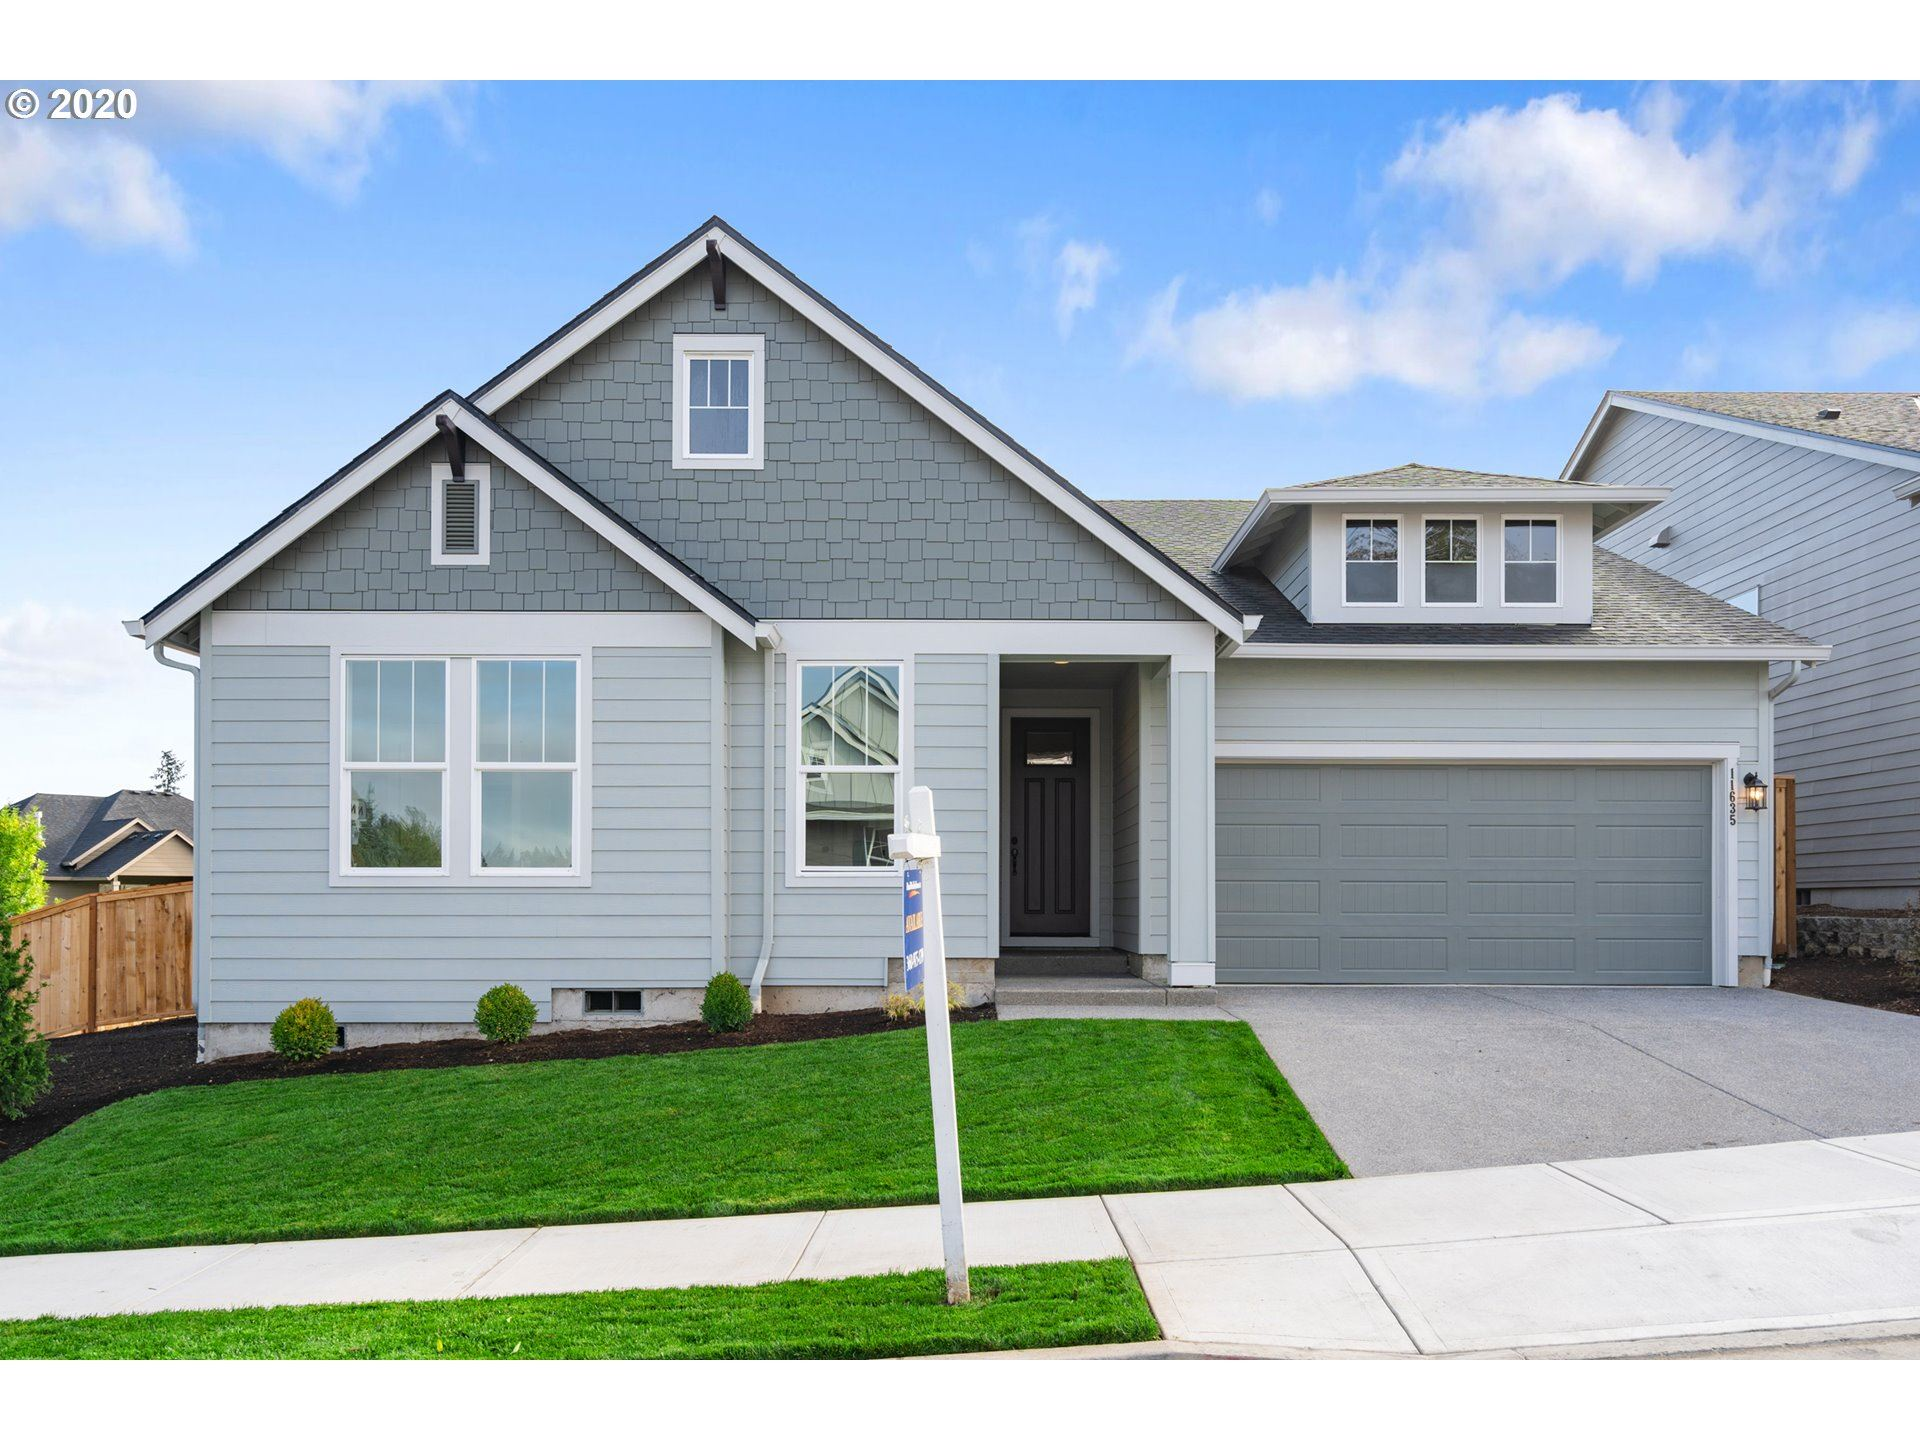 11635 NW 3RD AVE, Vancouver, WA 98685 - MLS#: 20082299